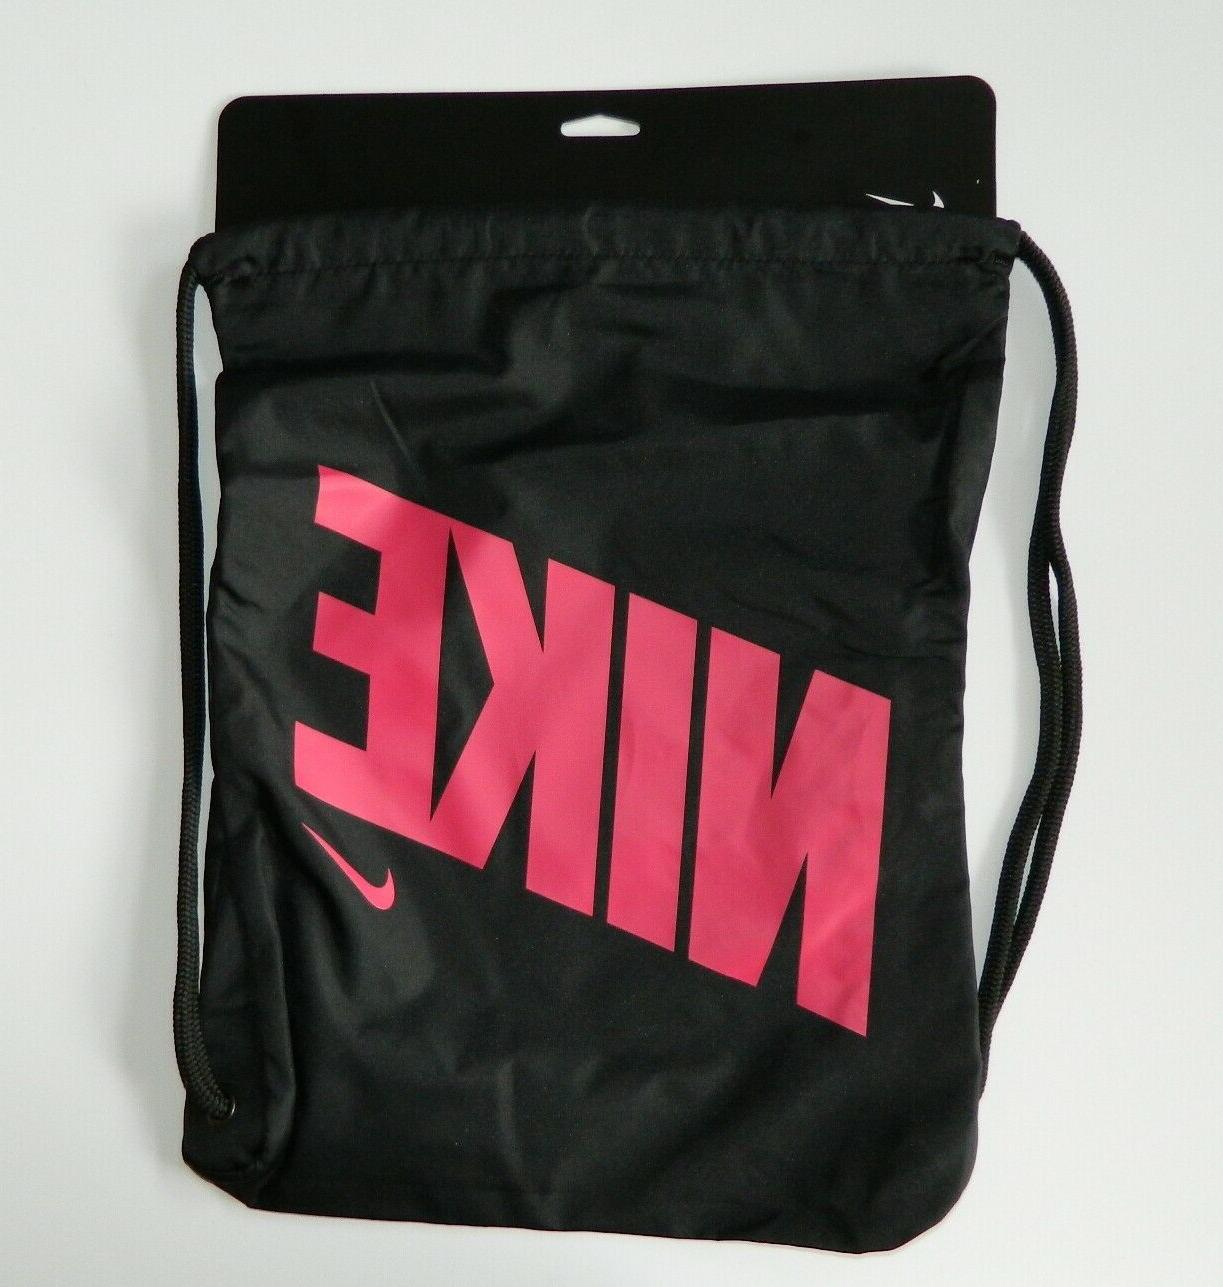 young athlete drawstring gymsack backpack